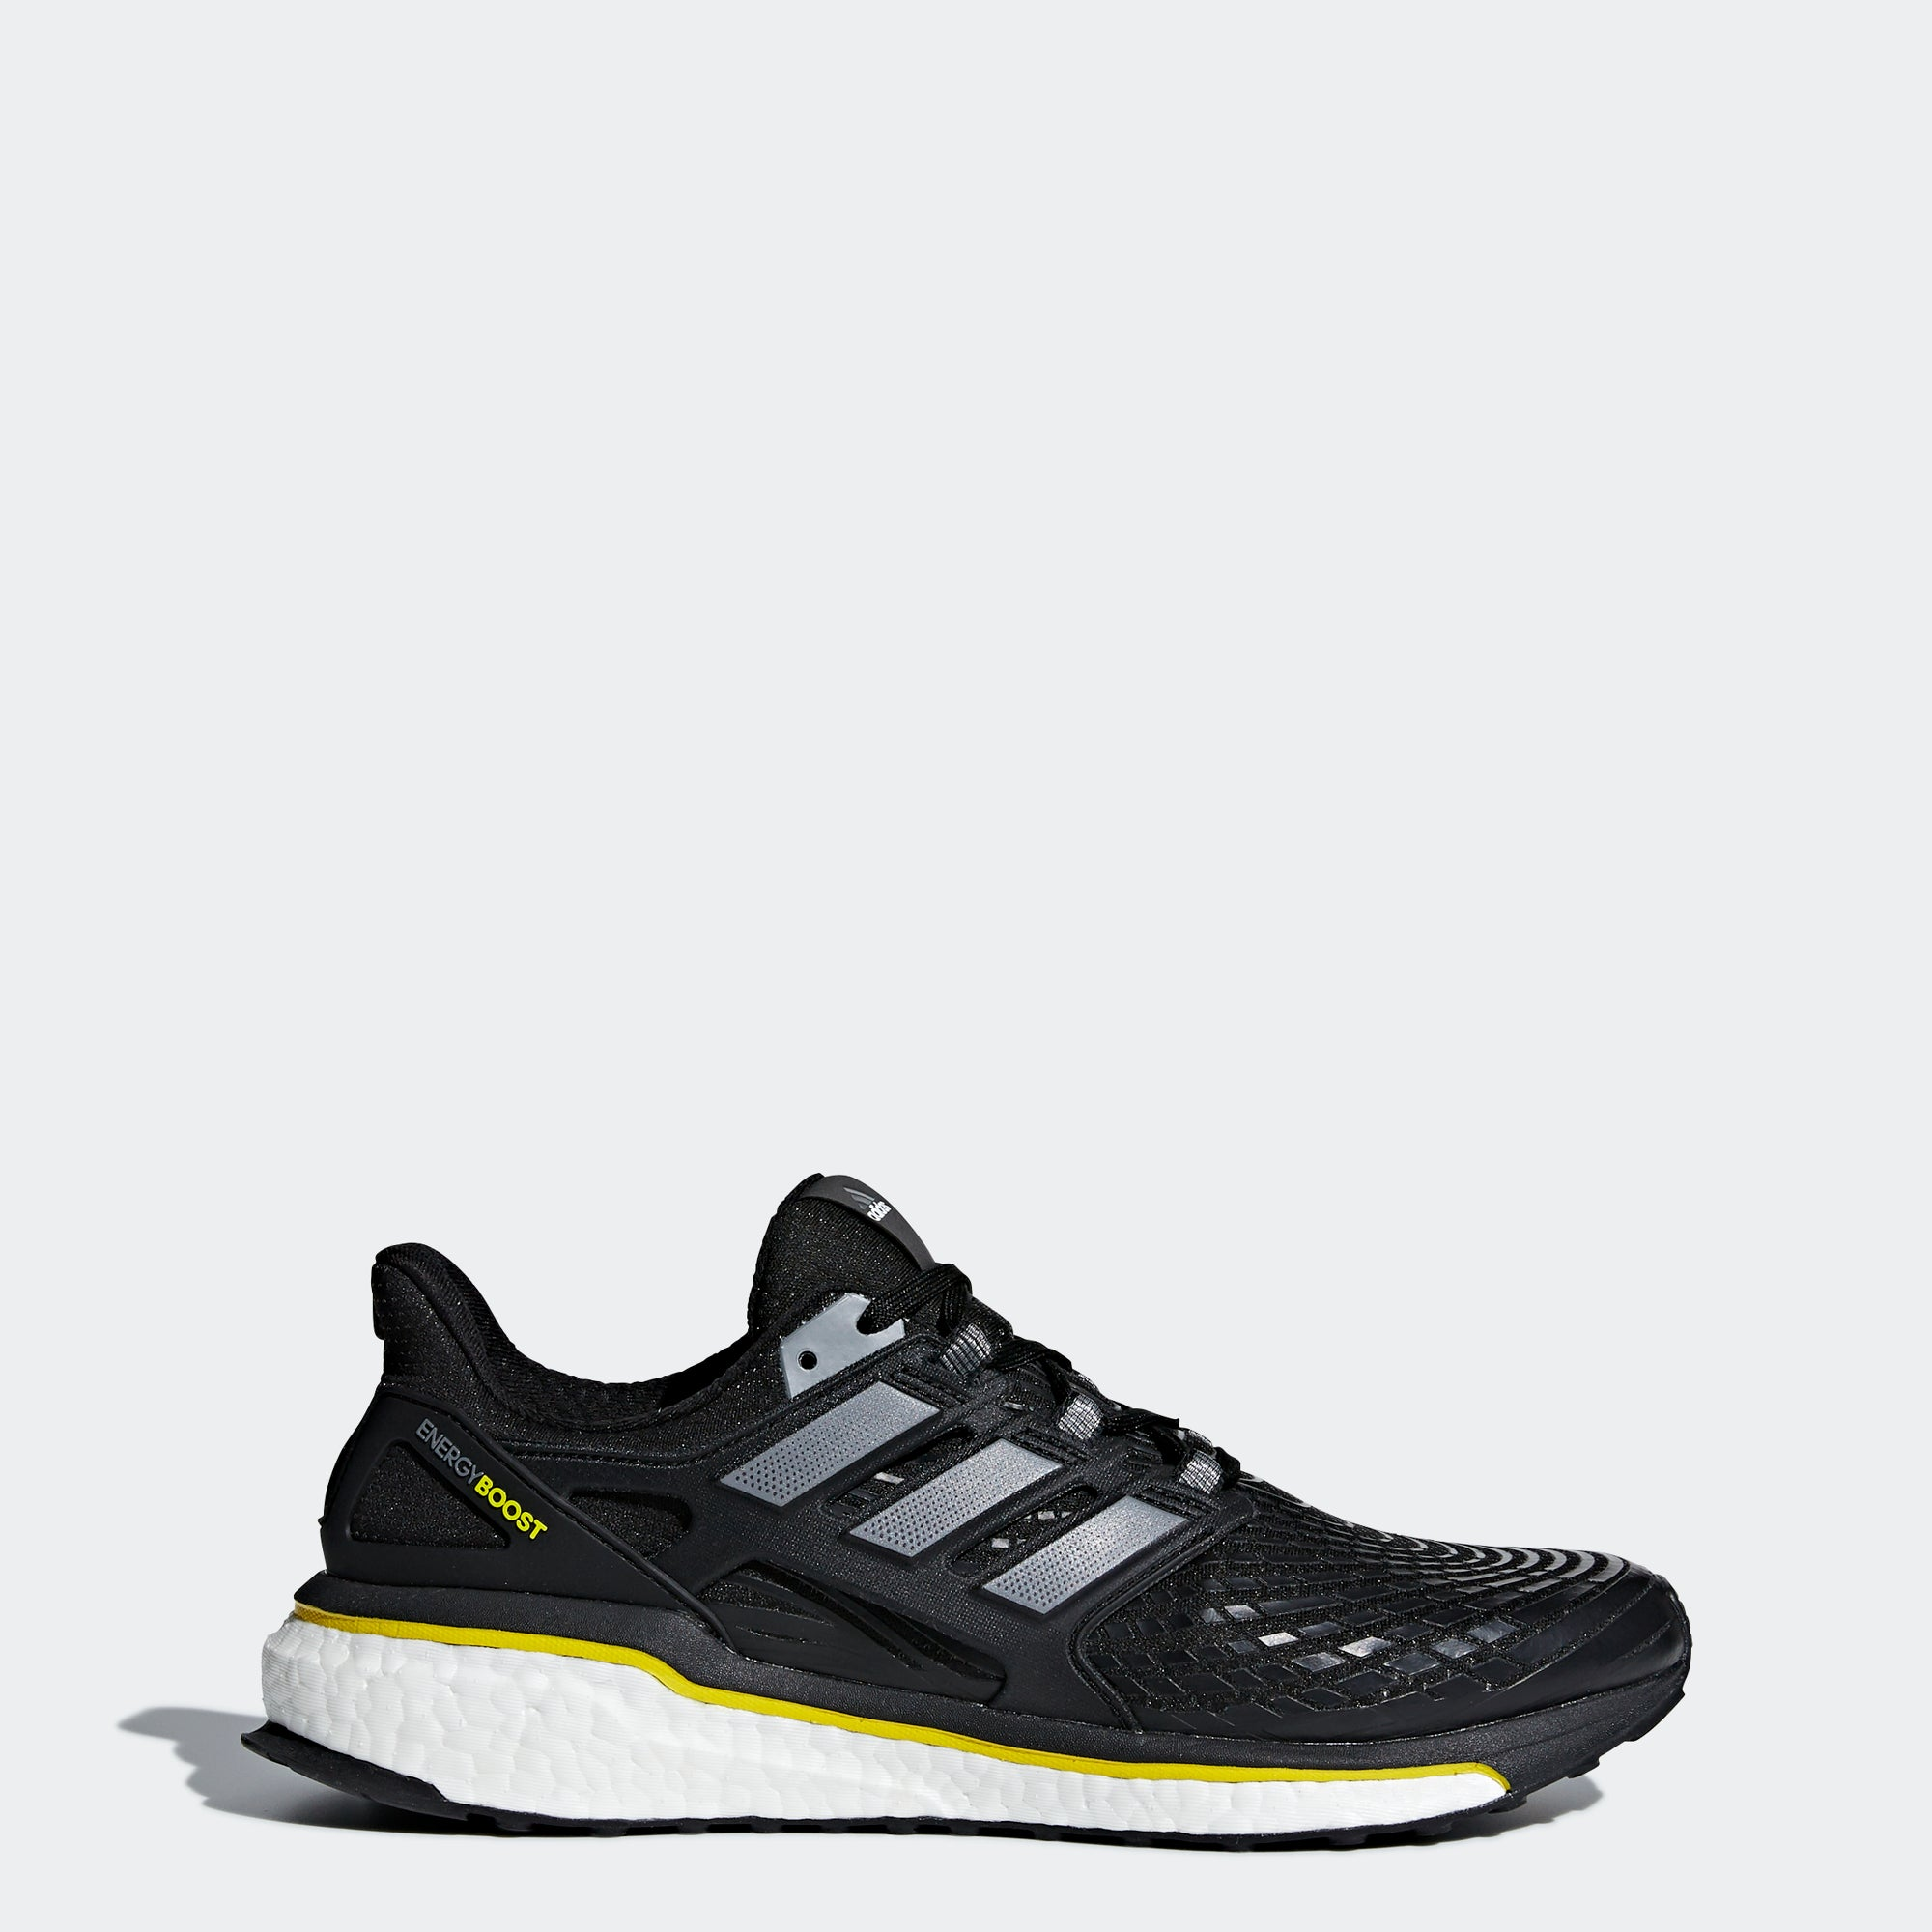 new product 77f98 0f950 Men s Adidas Running Energy Boost Shoes Core Black